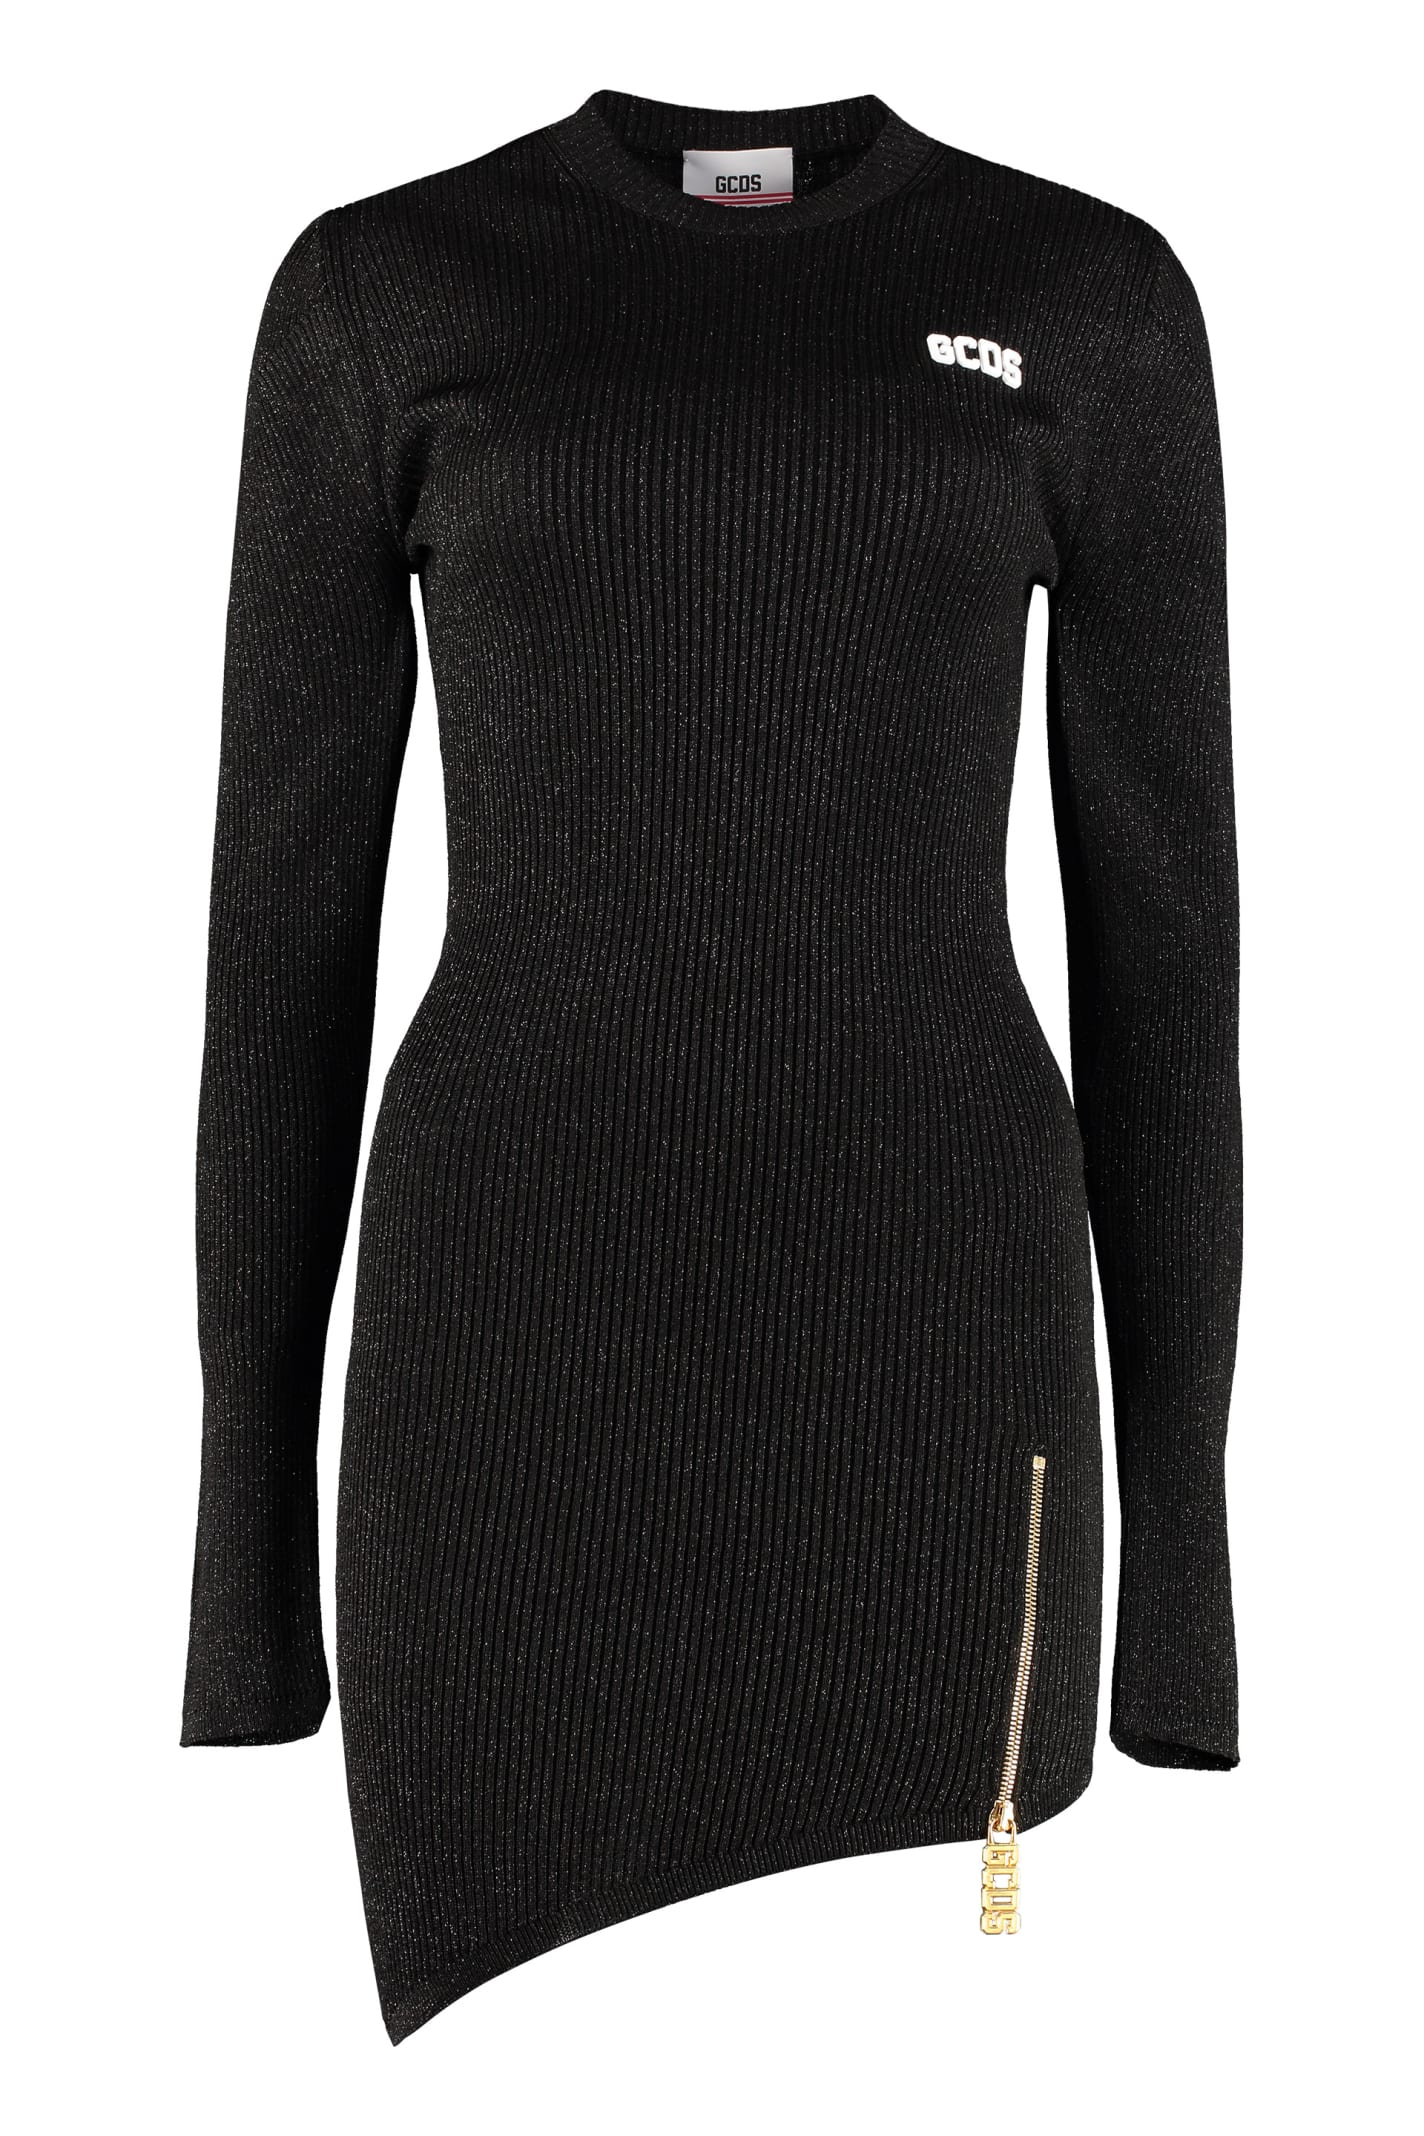 GCDS Knitted Asymmetric Dress